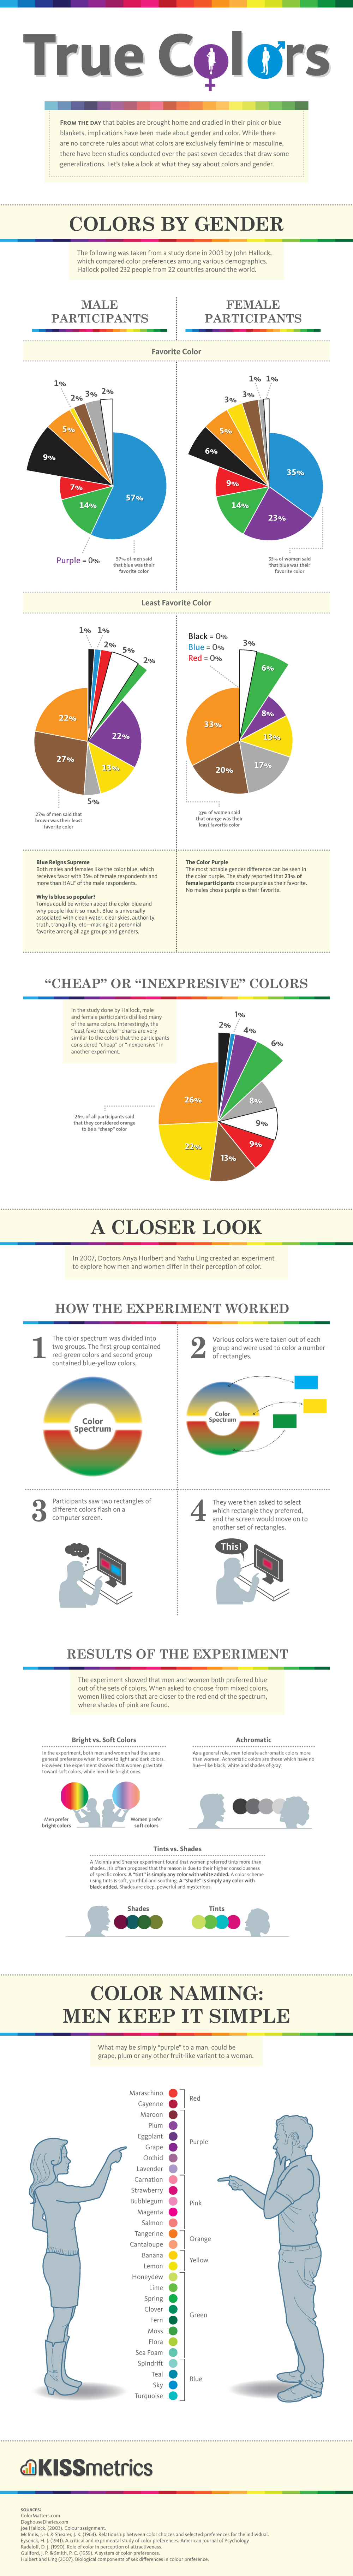 Color Preference by Gender & What it Tells About You